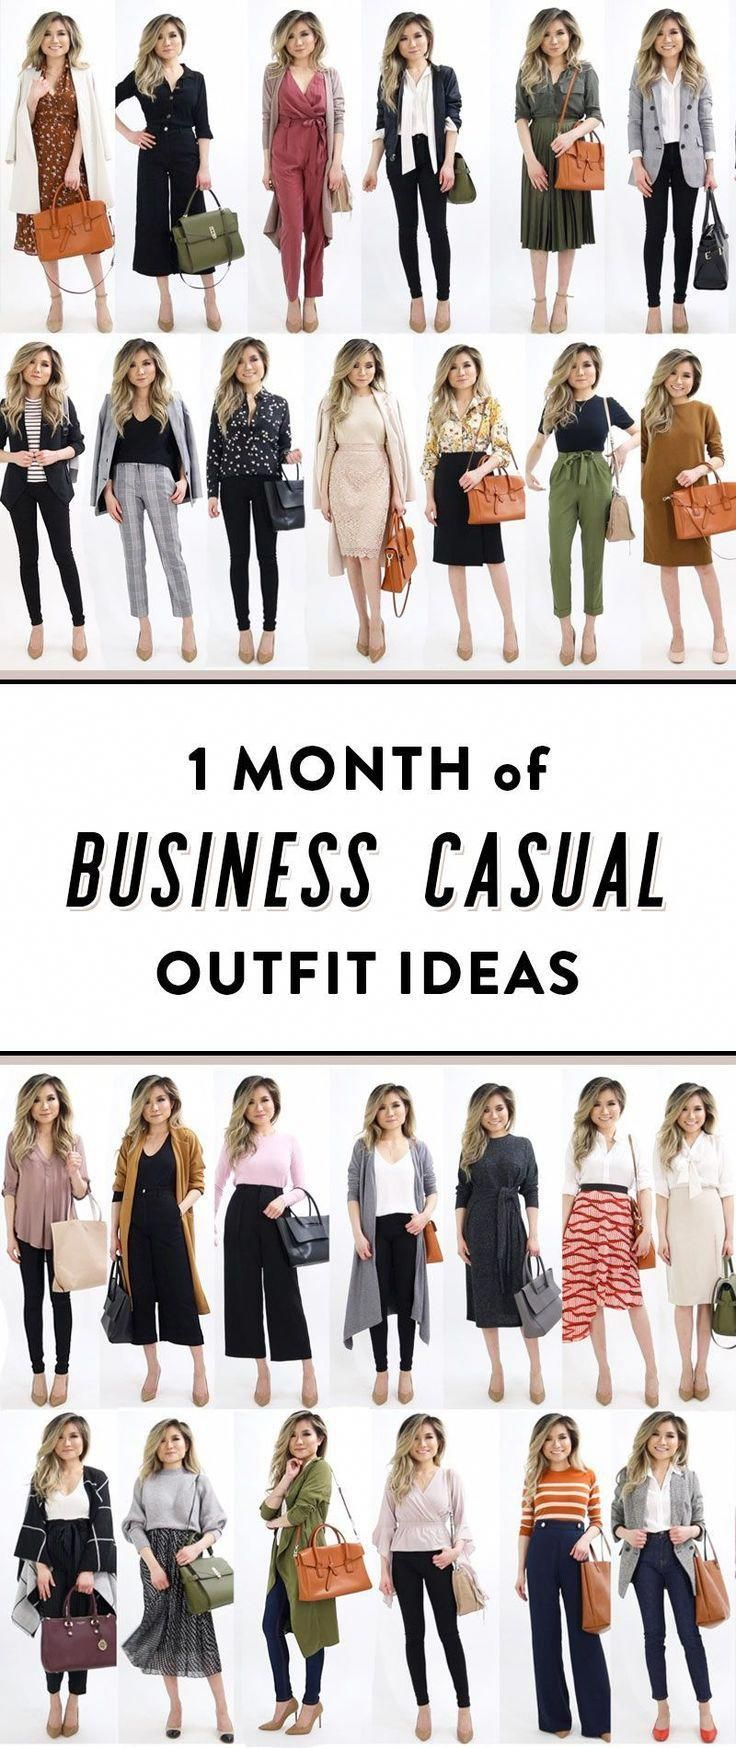 business casual, Work outfits women